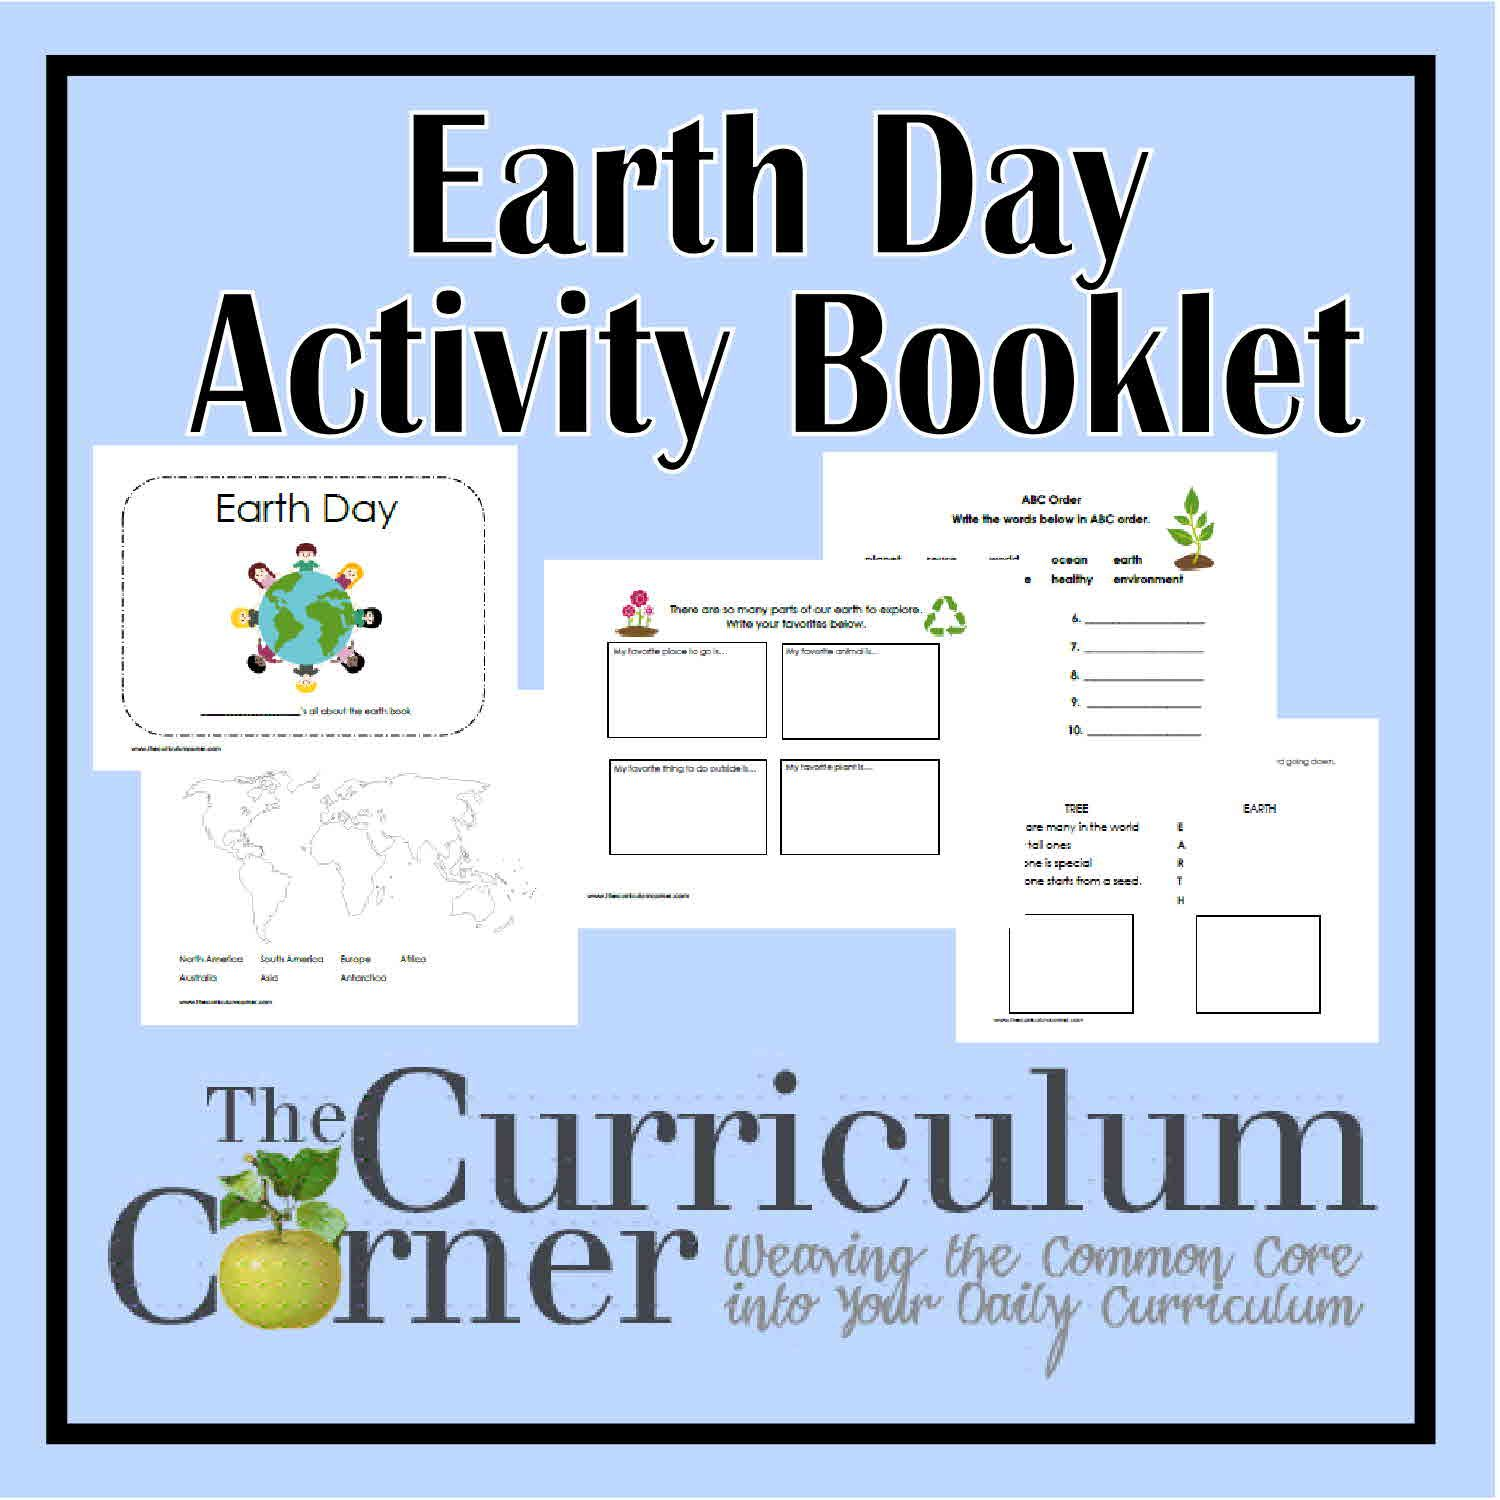 Earth Day Activity Booklet Earth Free printable and Activities